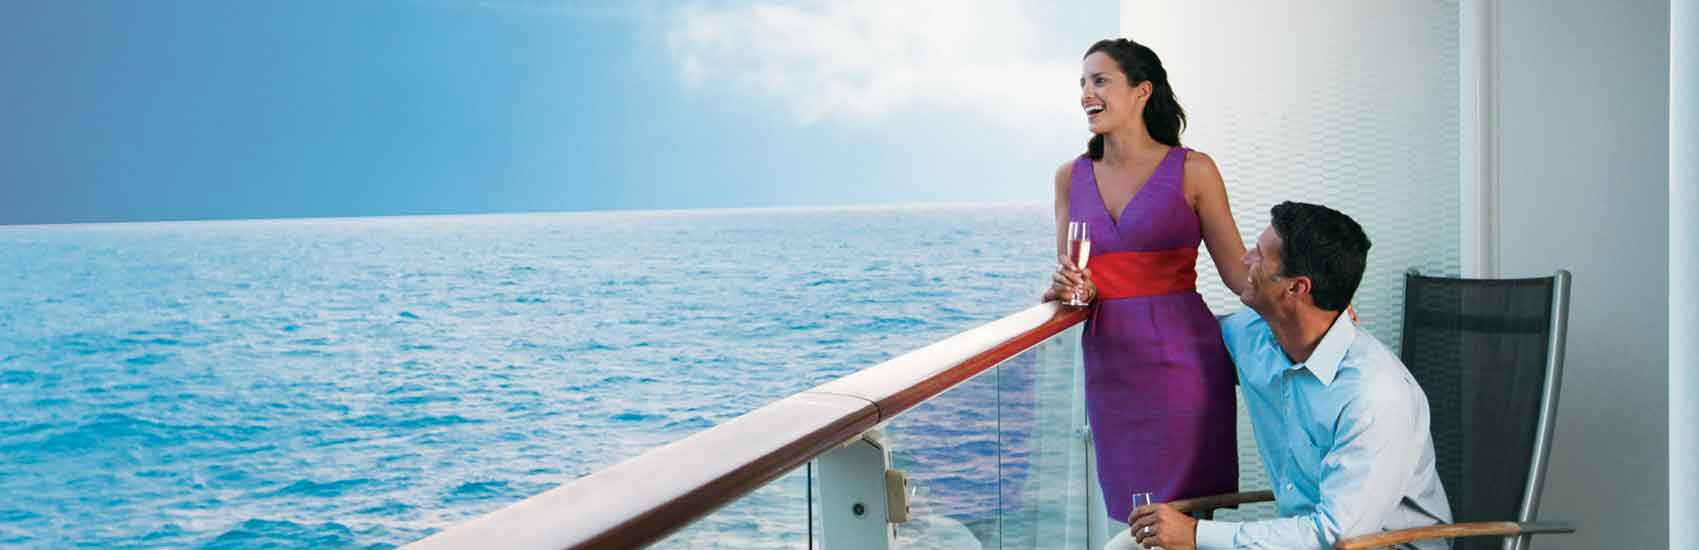 Complimentary Onboard Credit from Celebrity Cruises 1